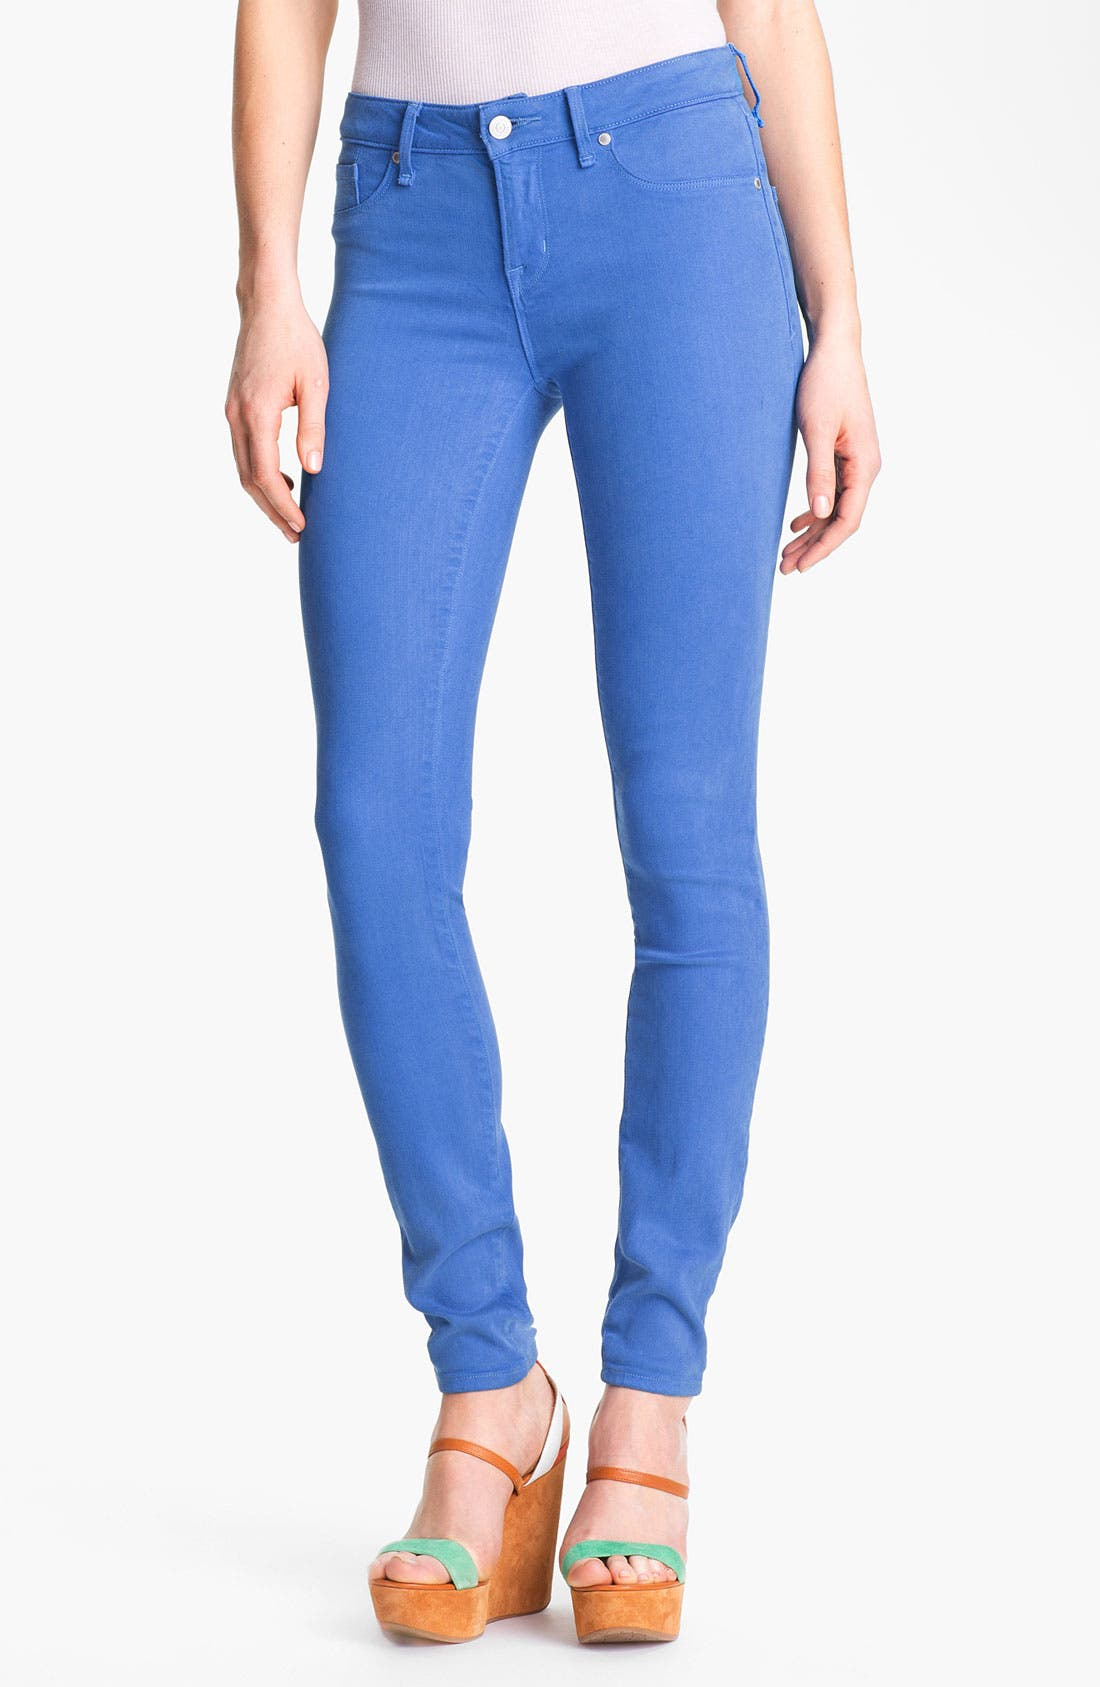 Alternate Image 1 Selected - MARC BY MARC JACOBS 'Stick' Colored Skinny Jeans (Electric Blue Lemonade)